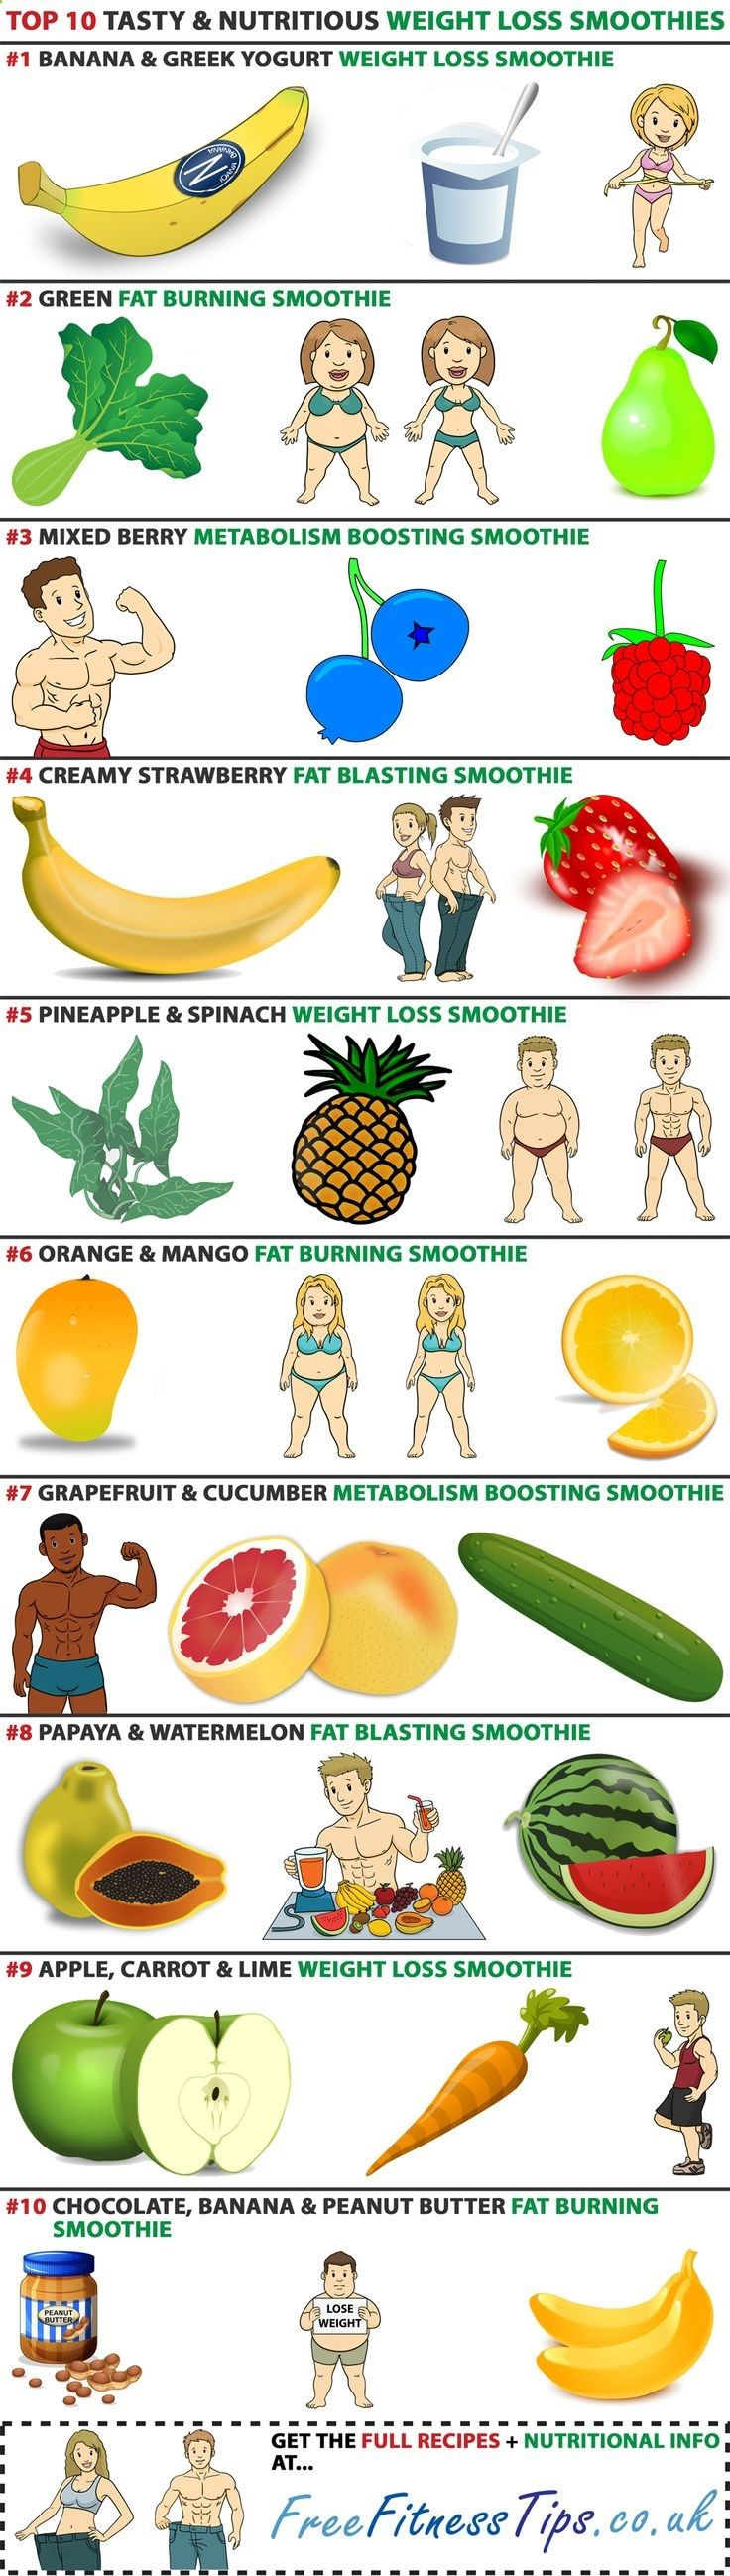 Make my weight loss plan picture 9